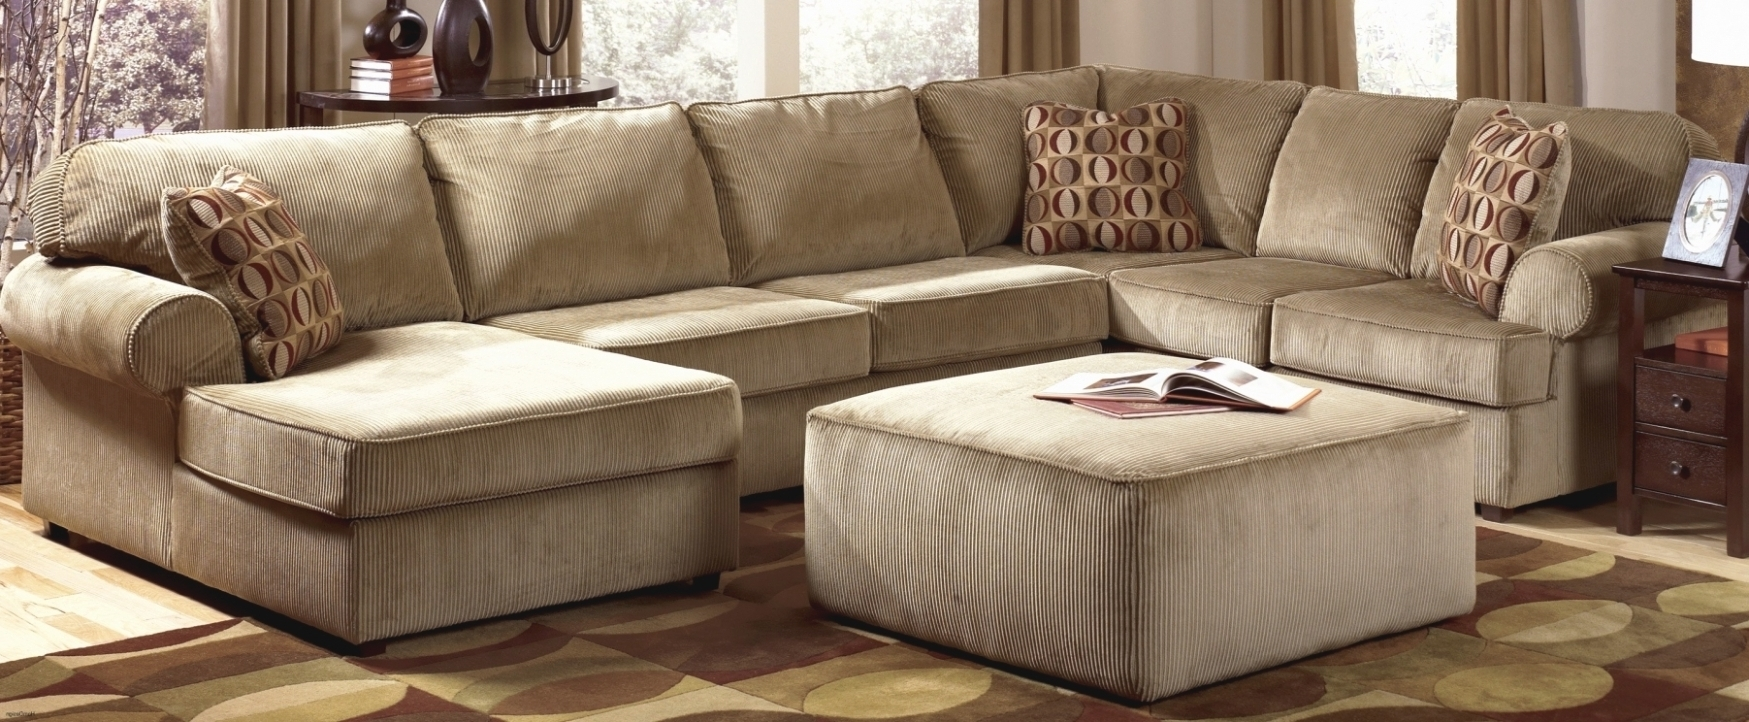 25 Ideas Of Outdoor Sectional Sofa At Target Throughout Fashionable Target Sectional Sofas (View 2 of 20)